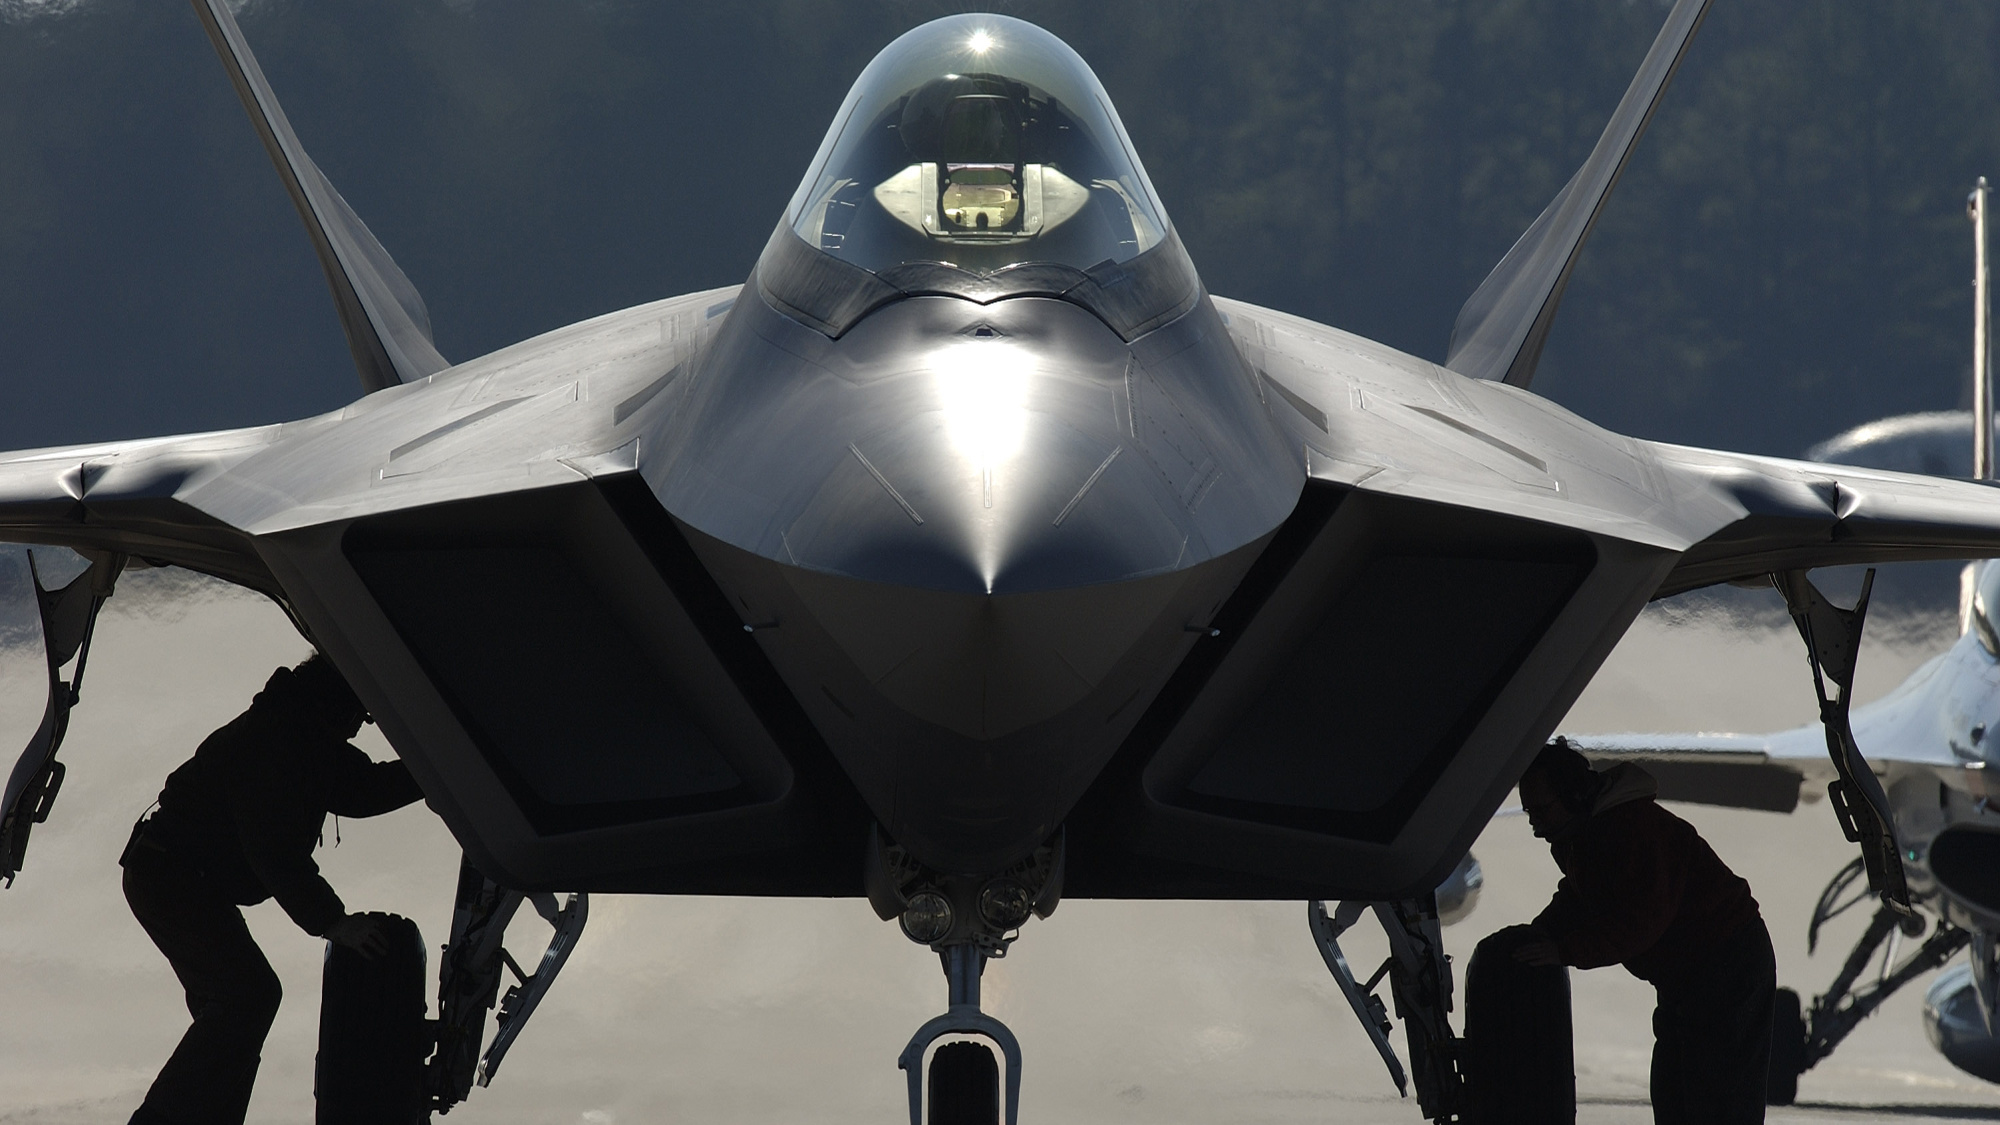 US military is world's single largest producer of greenhouse gases